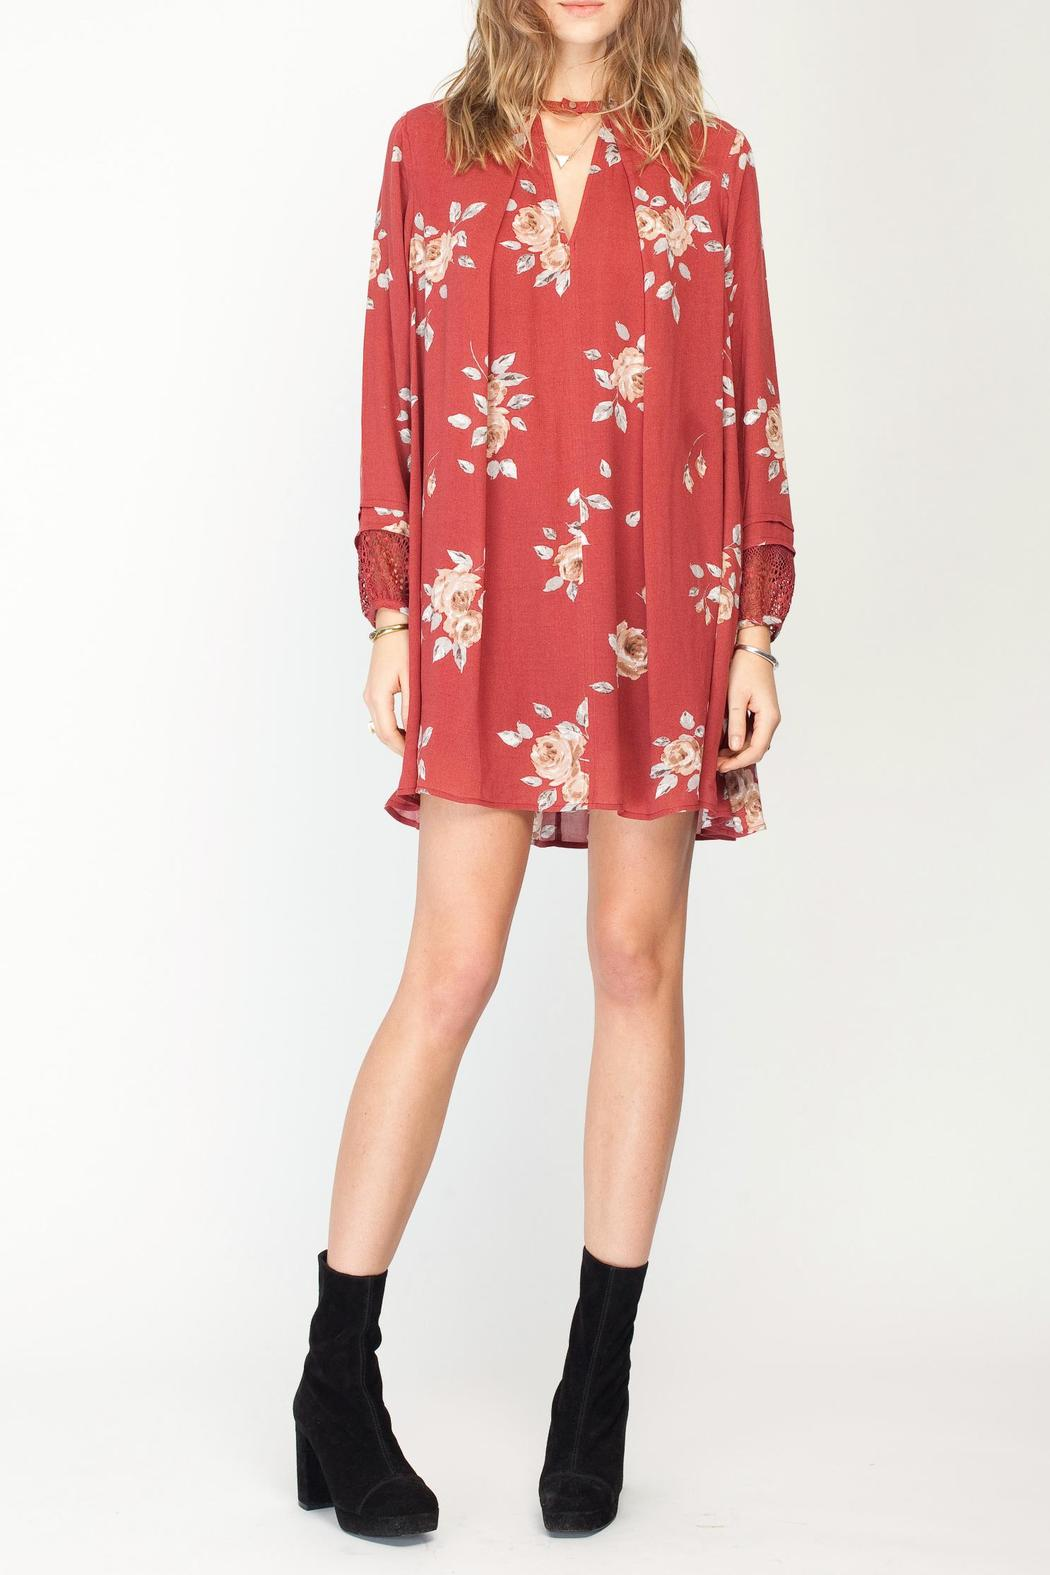 Gentle Fawn Floral Utopia Dress - Main Image